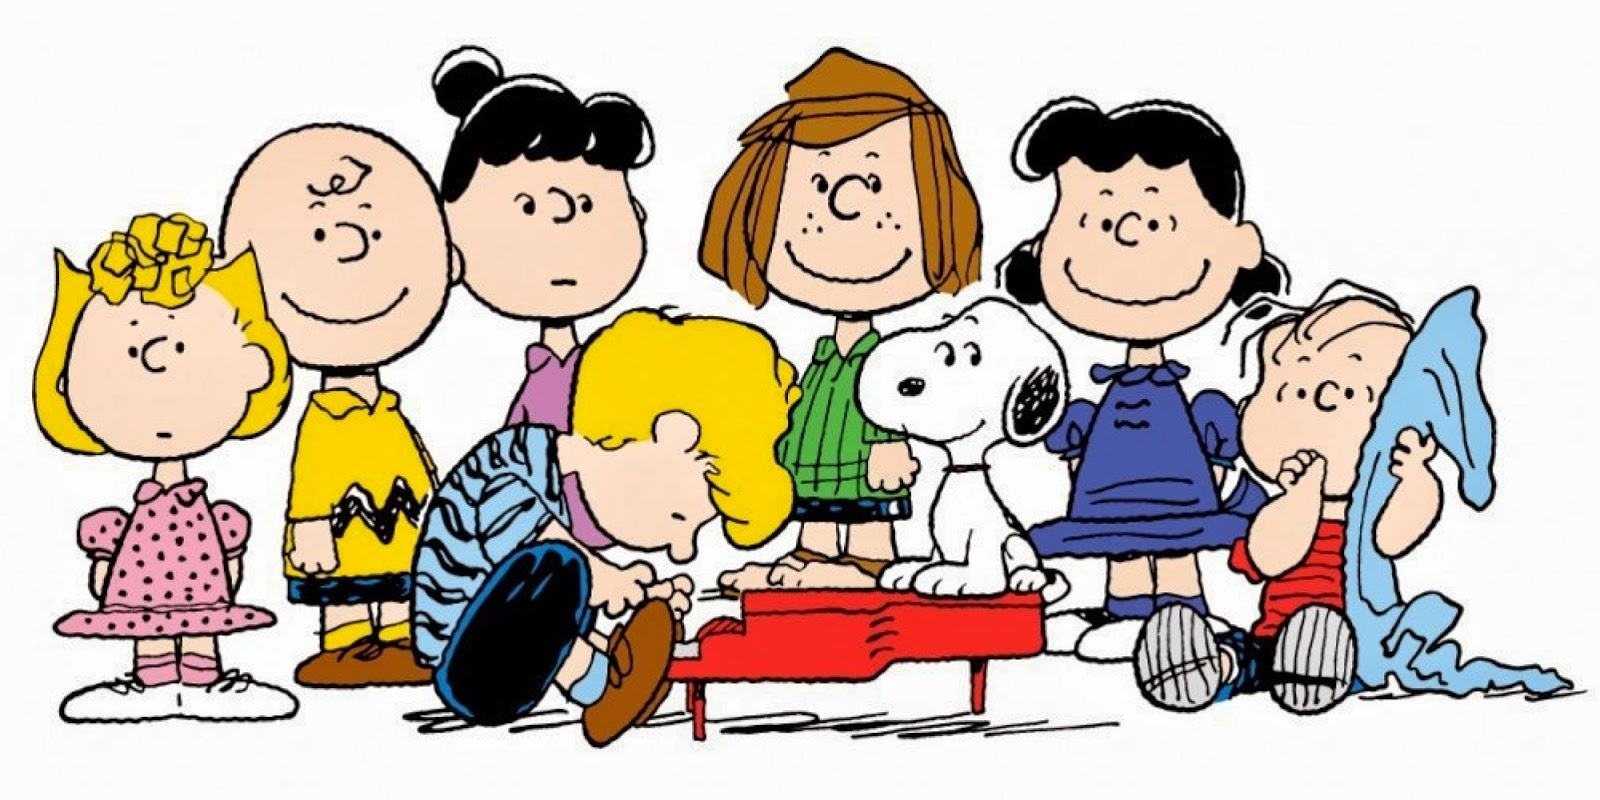 The Holiday Site Christmas Charlie Brown-The Holiday Site Christmas Charlie Brown And peanuts Clip Art-9